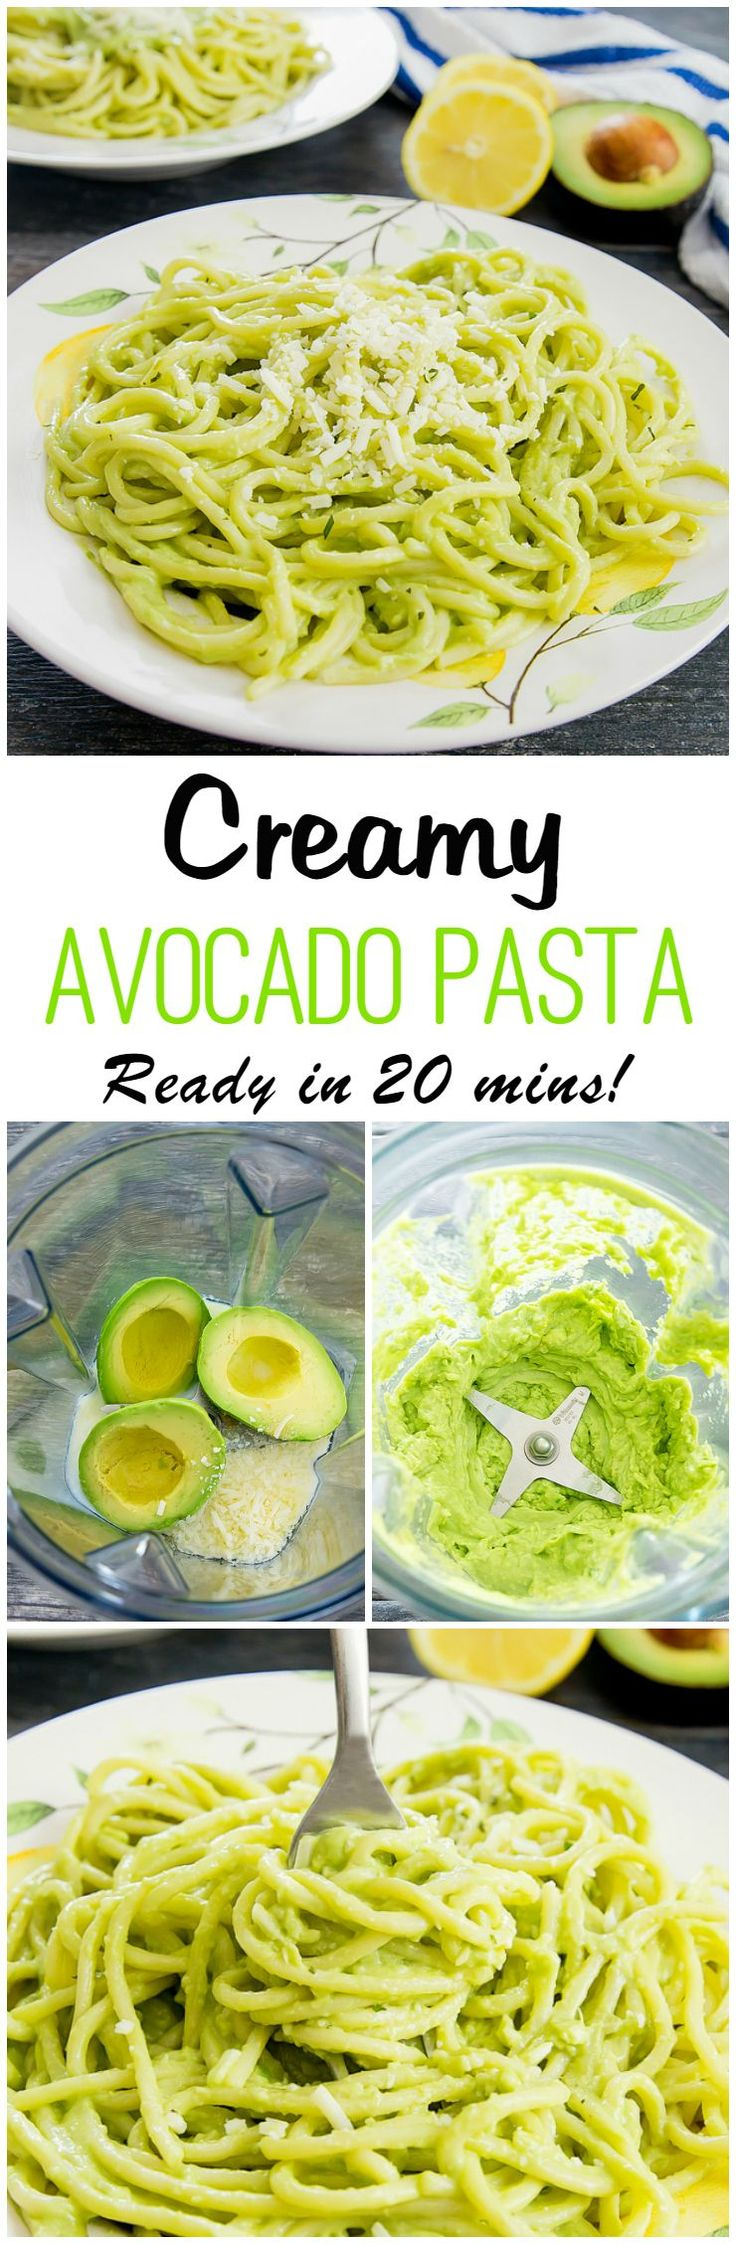 The creamiest avocado pasta. Ready in 20 minutes with this no cook, blender…